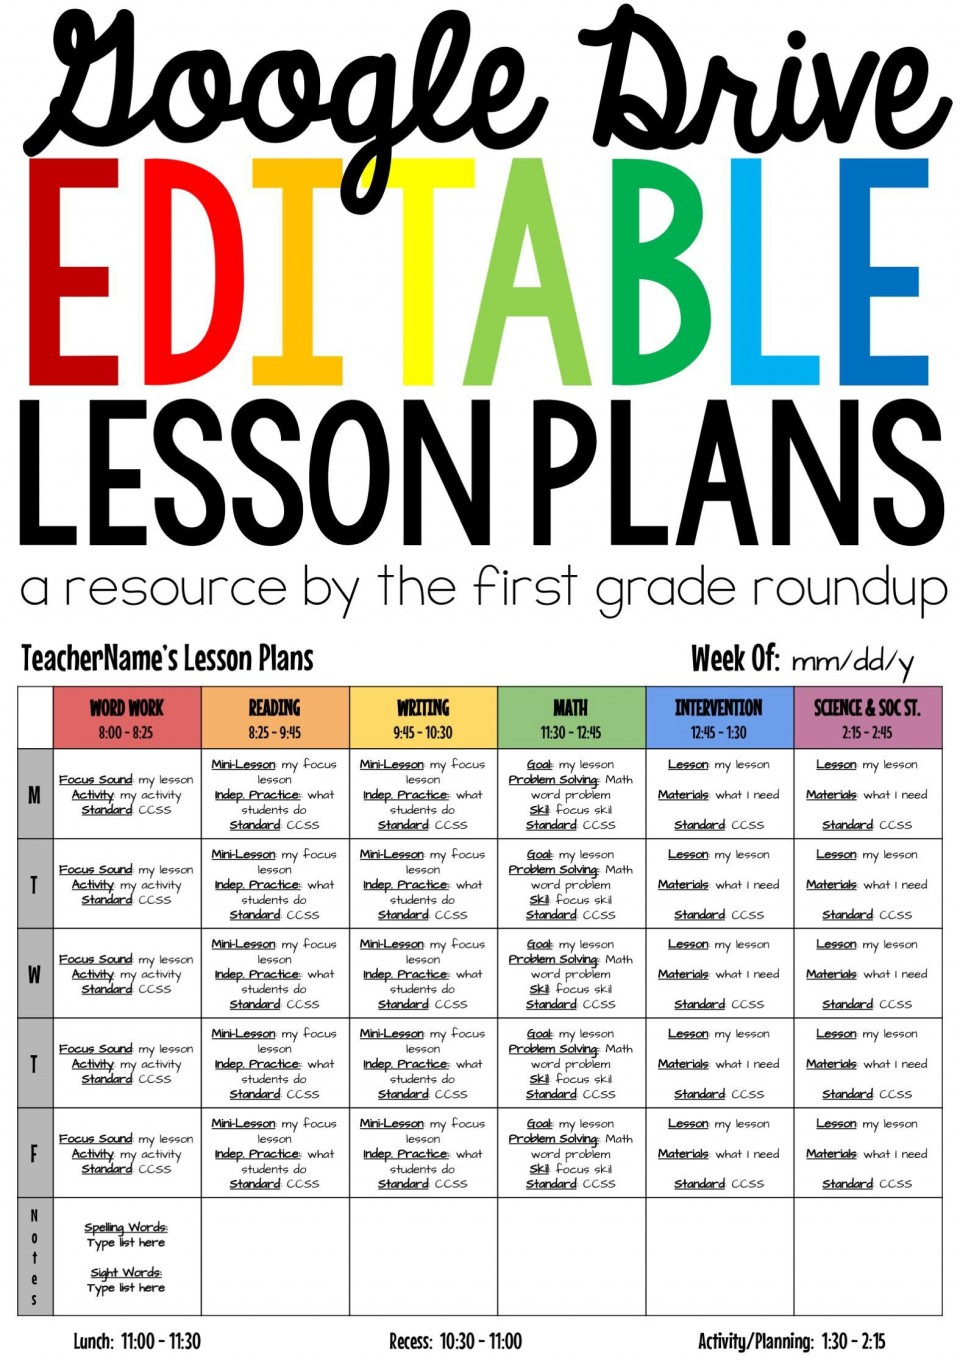 004 Dreaded Free Weekly Lesson Plan Template Google Doc High Definition 960